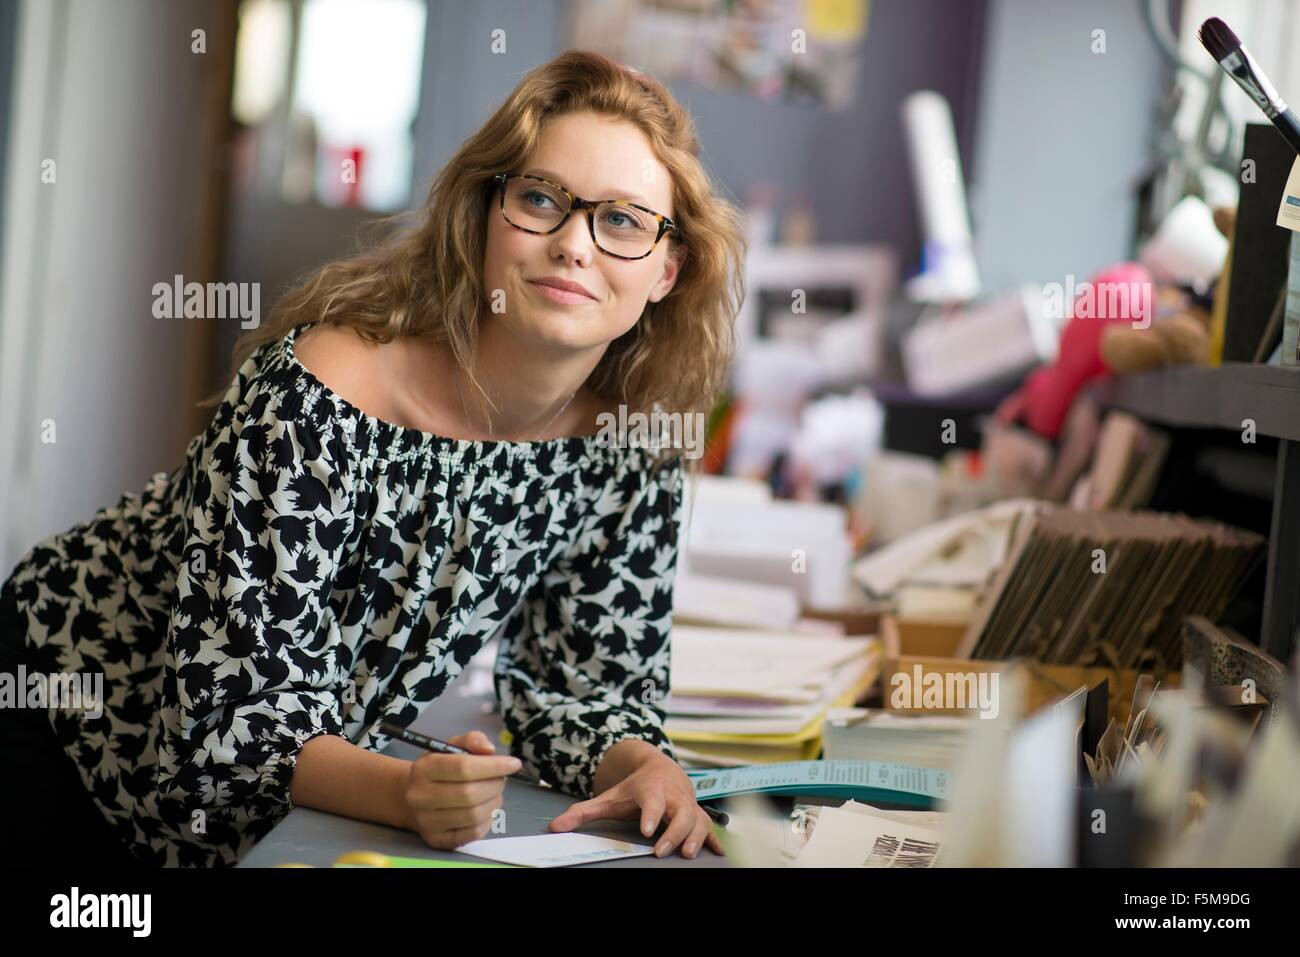 Female print designer drawing designs in workshop - Stock Image